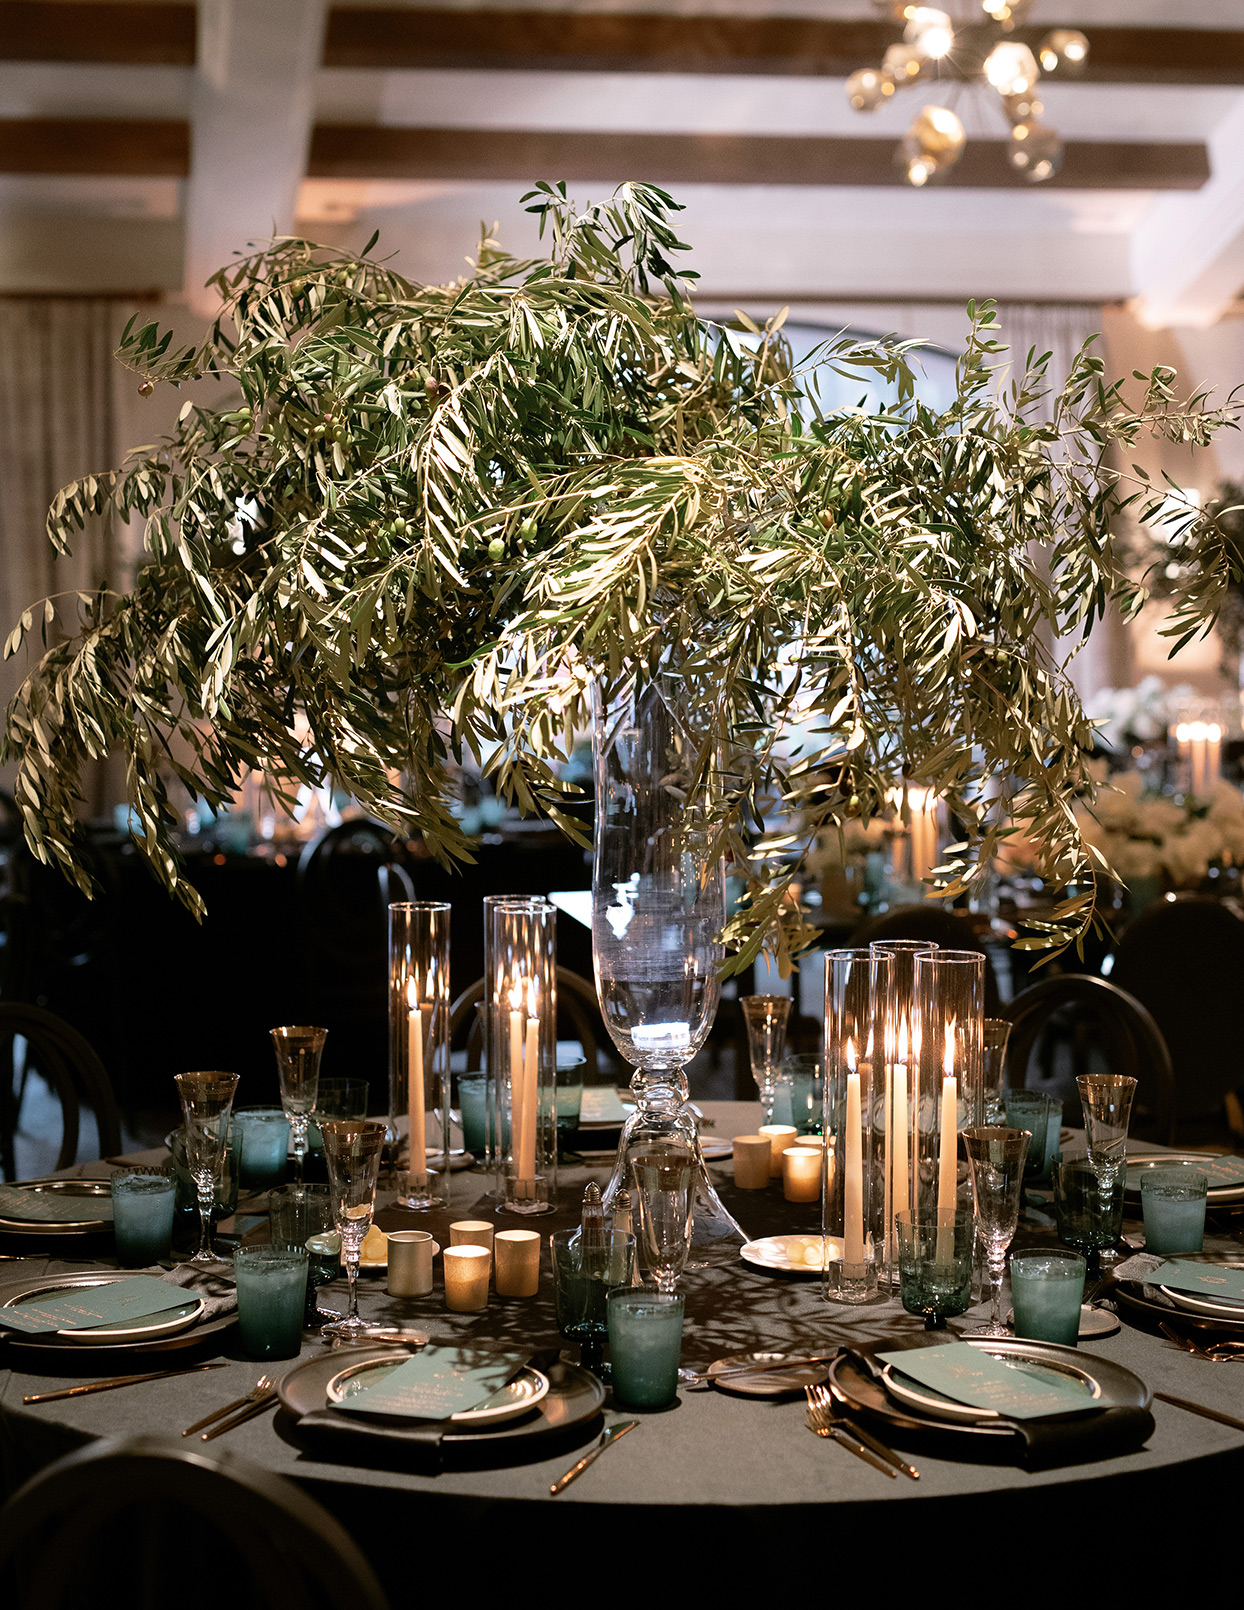 jason justin wedding reception dark tablescape with large greenery centerpiece